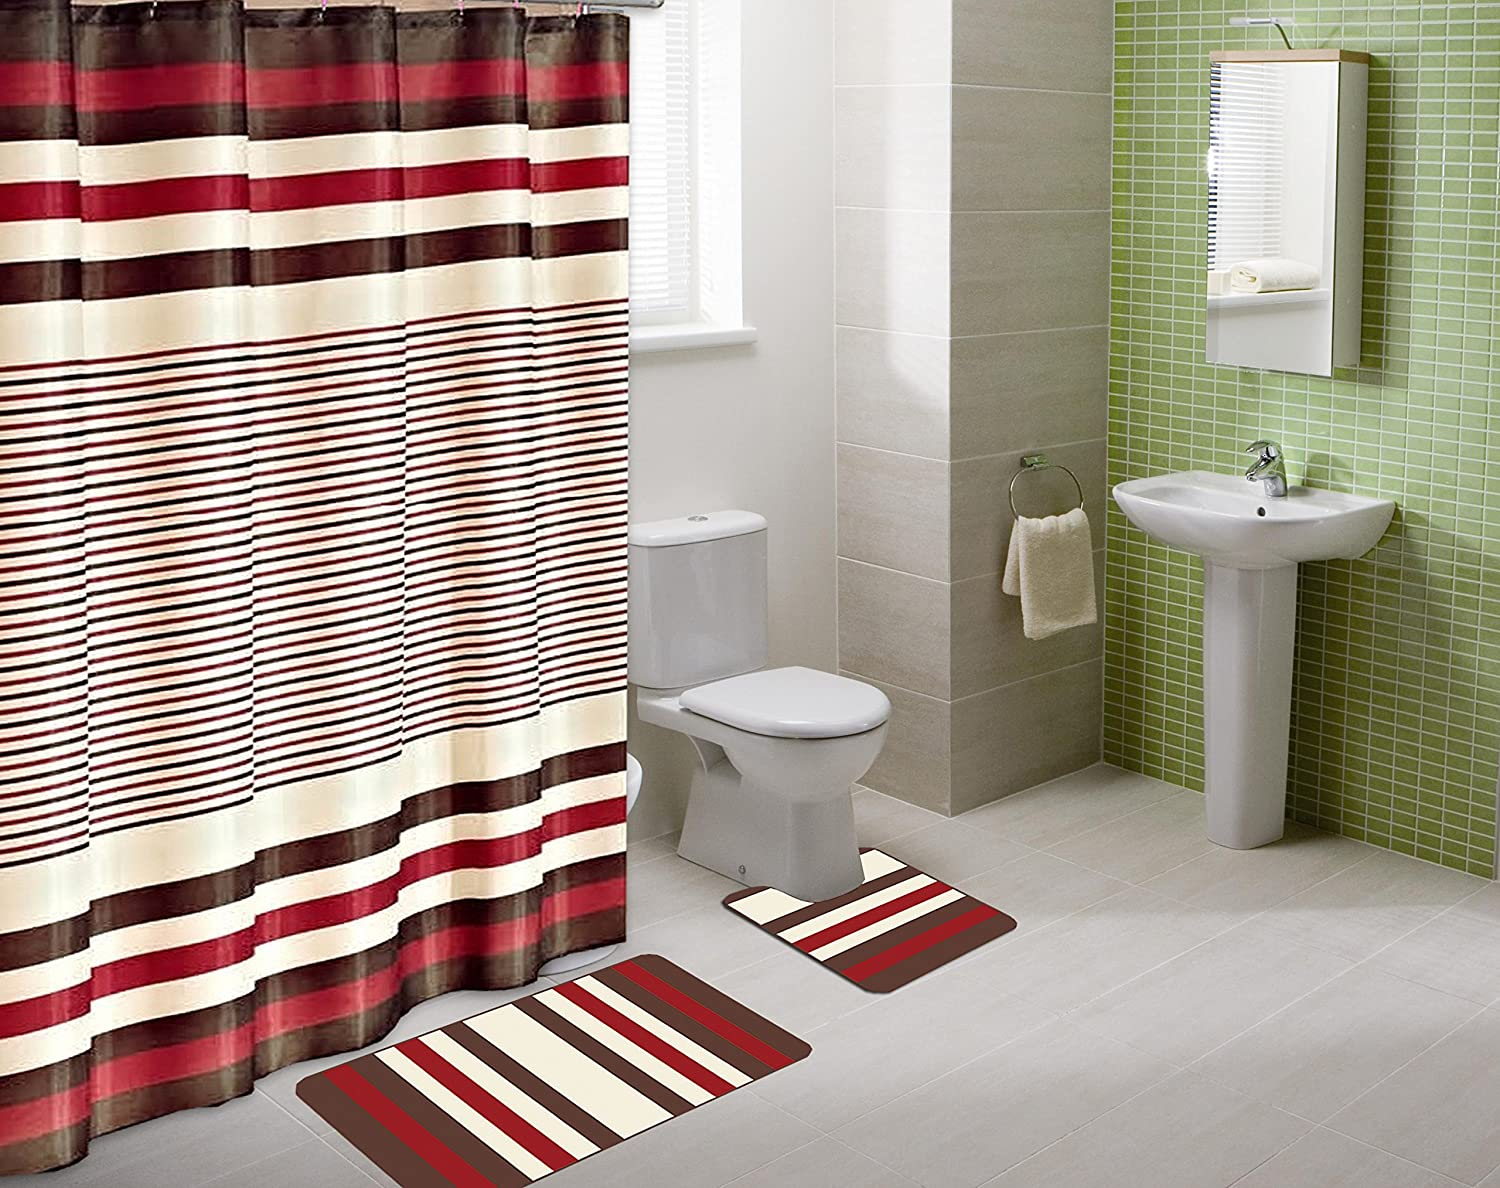 Fabulous Gorgeoushome Complete Bathroom Set Printed Banded Rubber Backing Rug Bath Mats With Fabric Shower Curtain Hooks New Designs 15Pc Burgundy Winry Download Free Architecture Designs Scobabritishbridgeorg